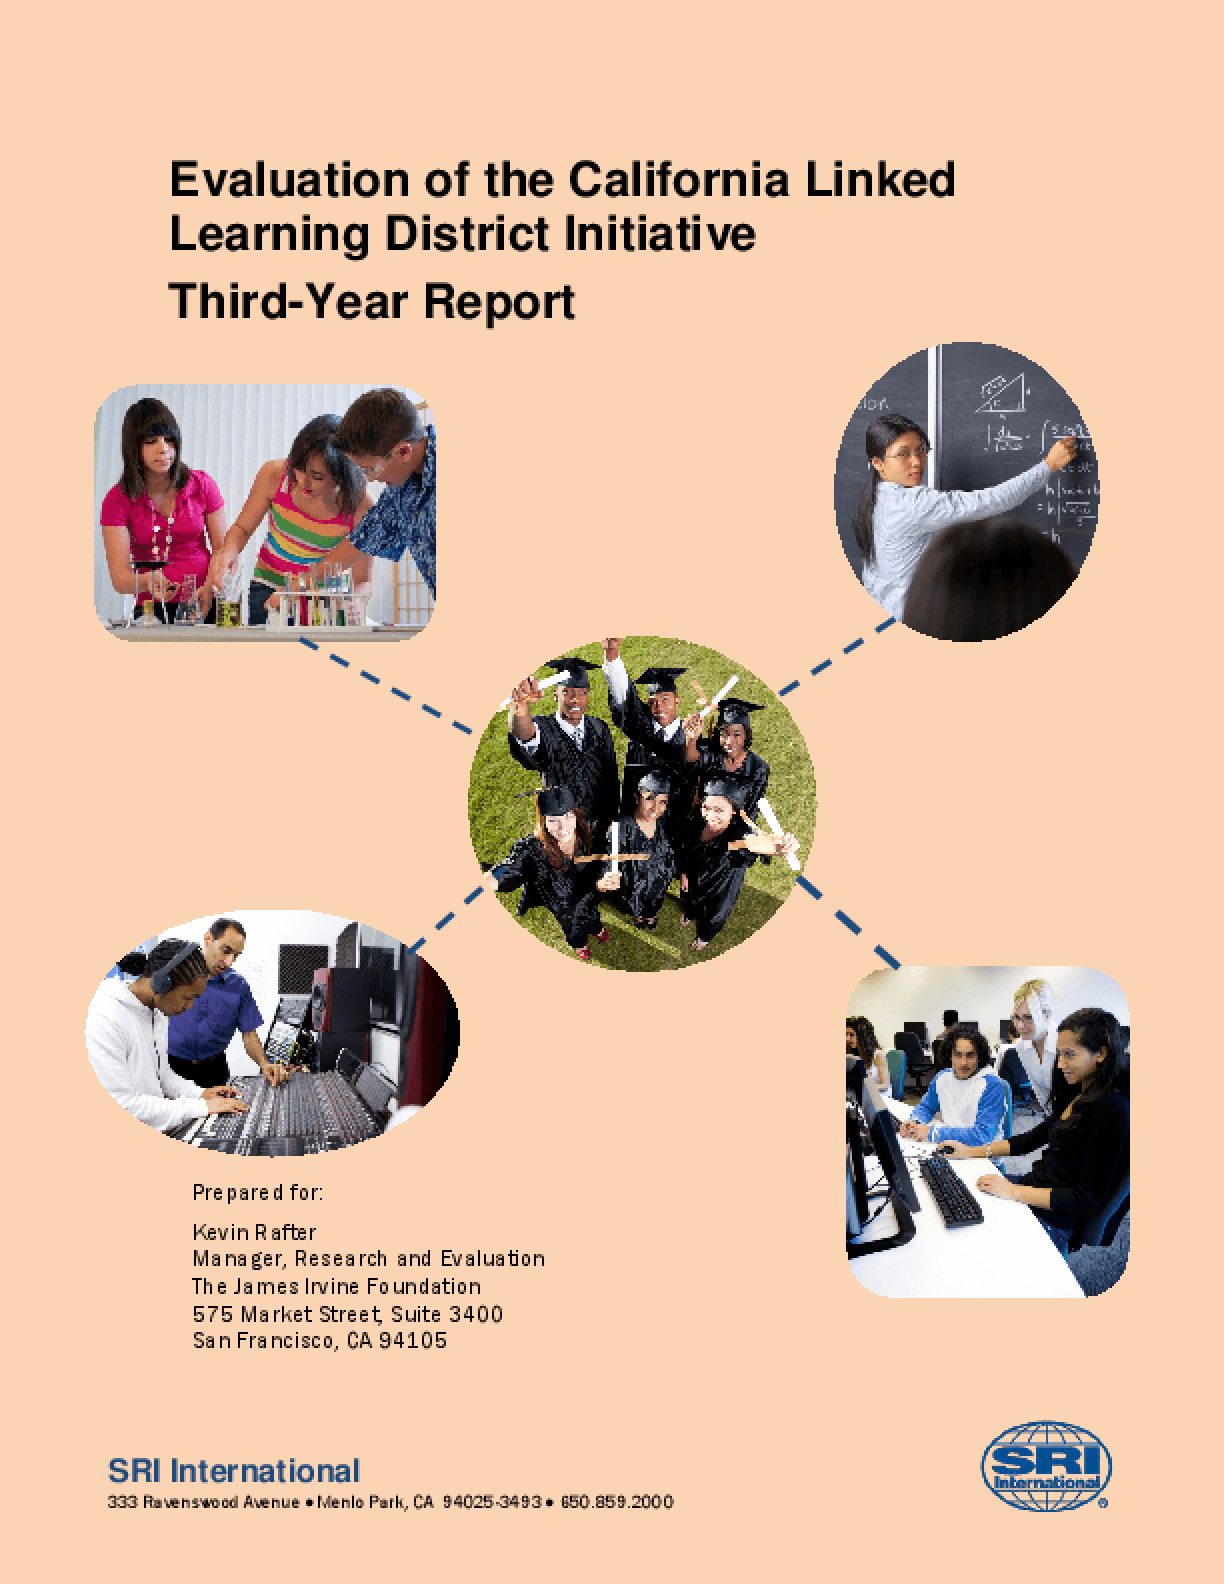 Evaluation of the California Linked Learning District Initiative